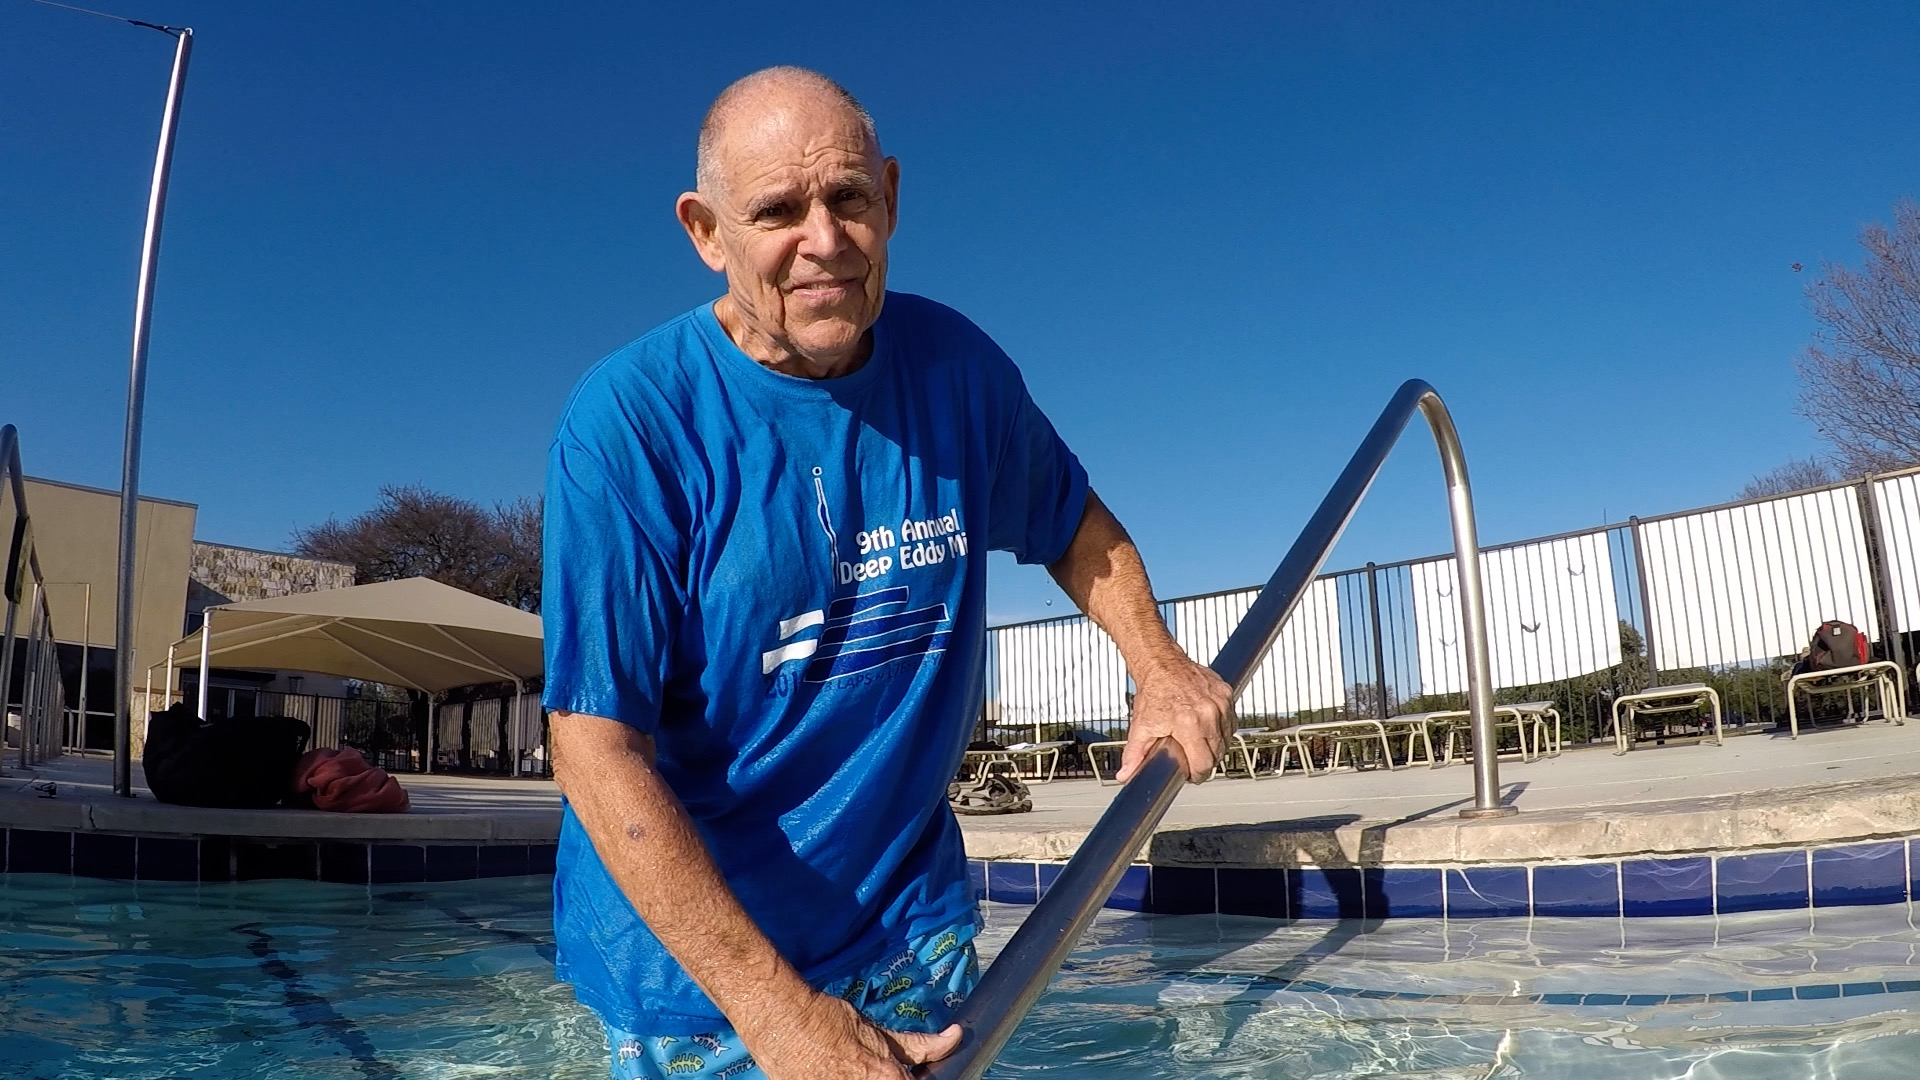 Swim-A-Day is brought to you by a Living Legend. - Texas swimming legend, Dotson Smith is 81-years-old. He has been teaching swimmers for 60 years and is still going strong and ready to coach you.Click here to learn more about Dotson Smith➝